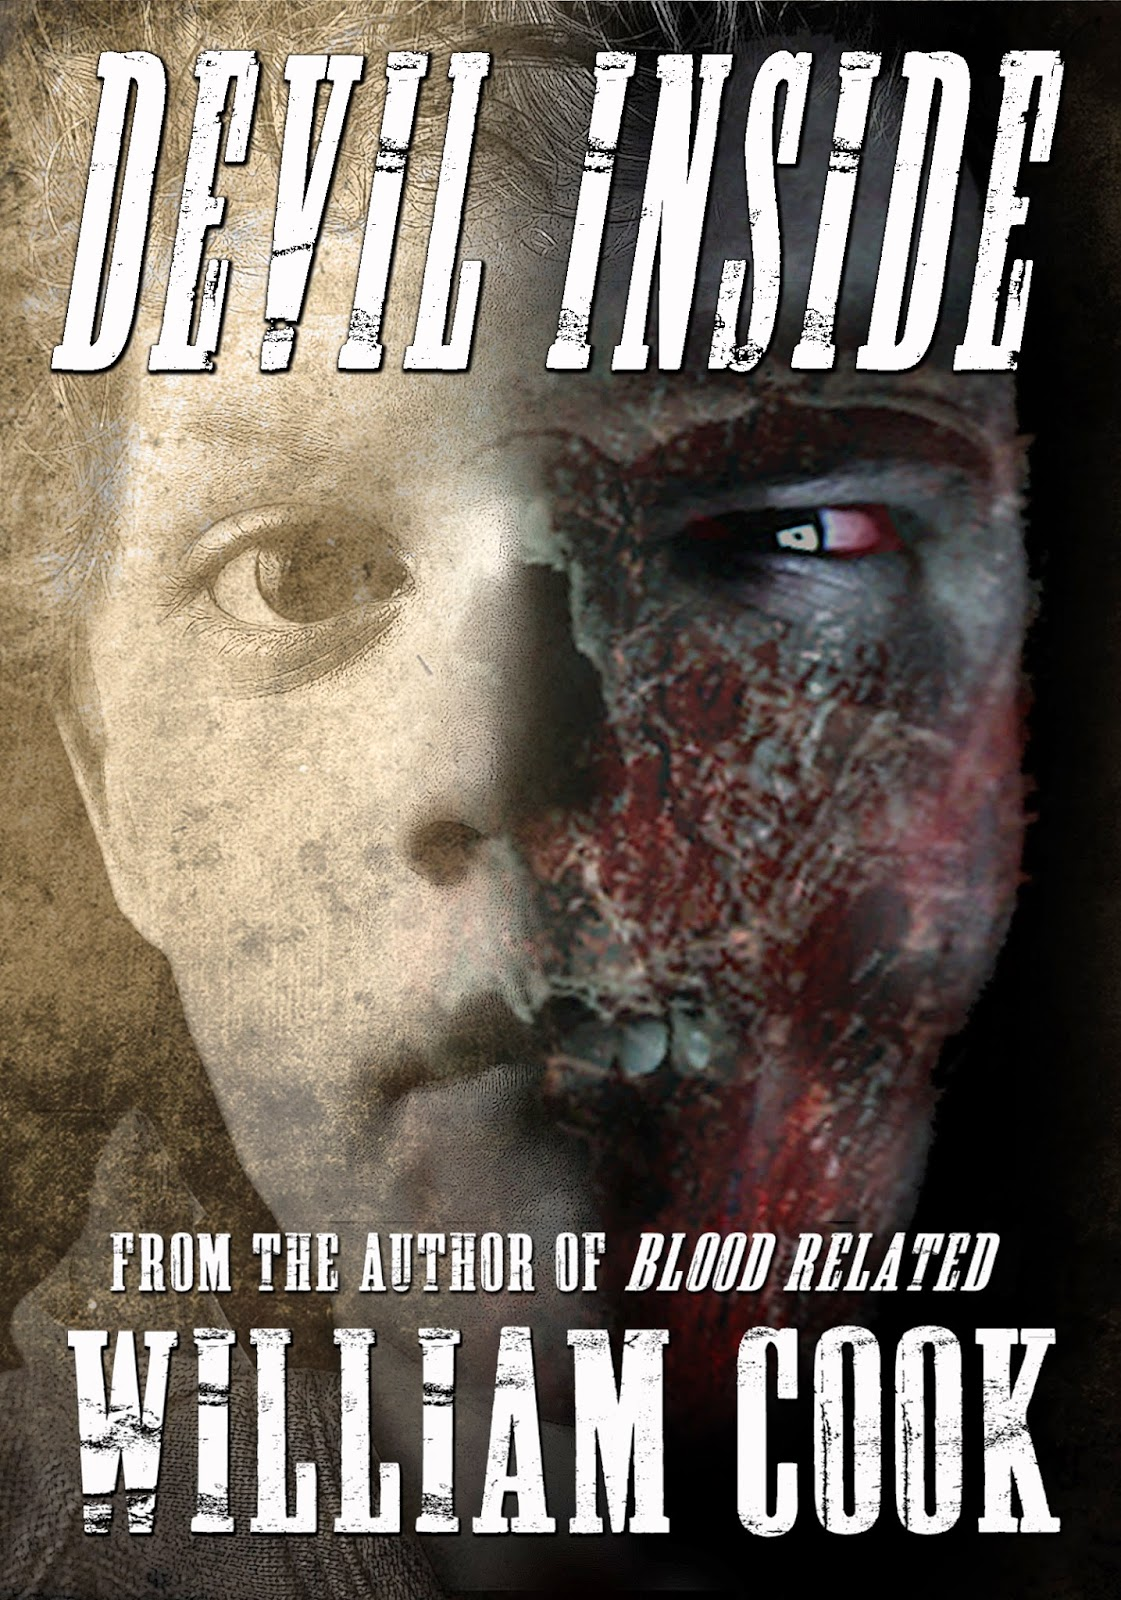 http://www.amazon.com/Devil-Inside-William-Cook-ebook/dp/B00B3OCVMC/ref=la_B003PA513I_1_5?s=books&ie=UTF8&qid=1415613199&sr=1-5